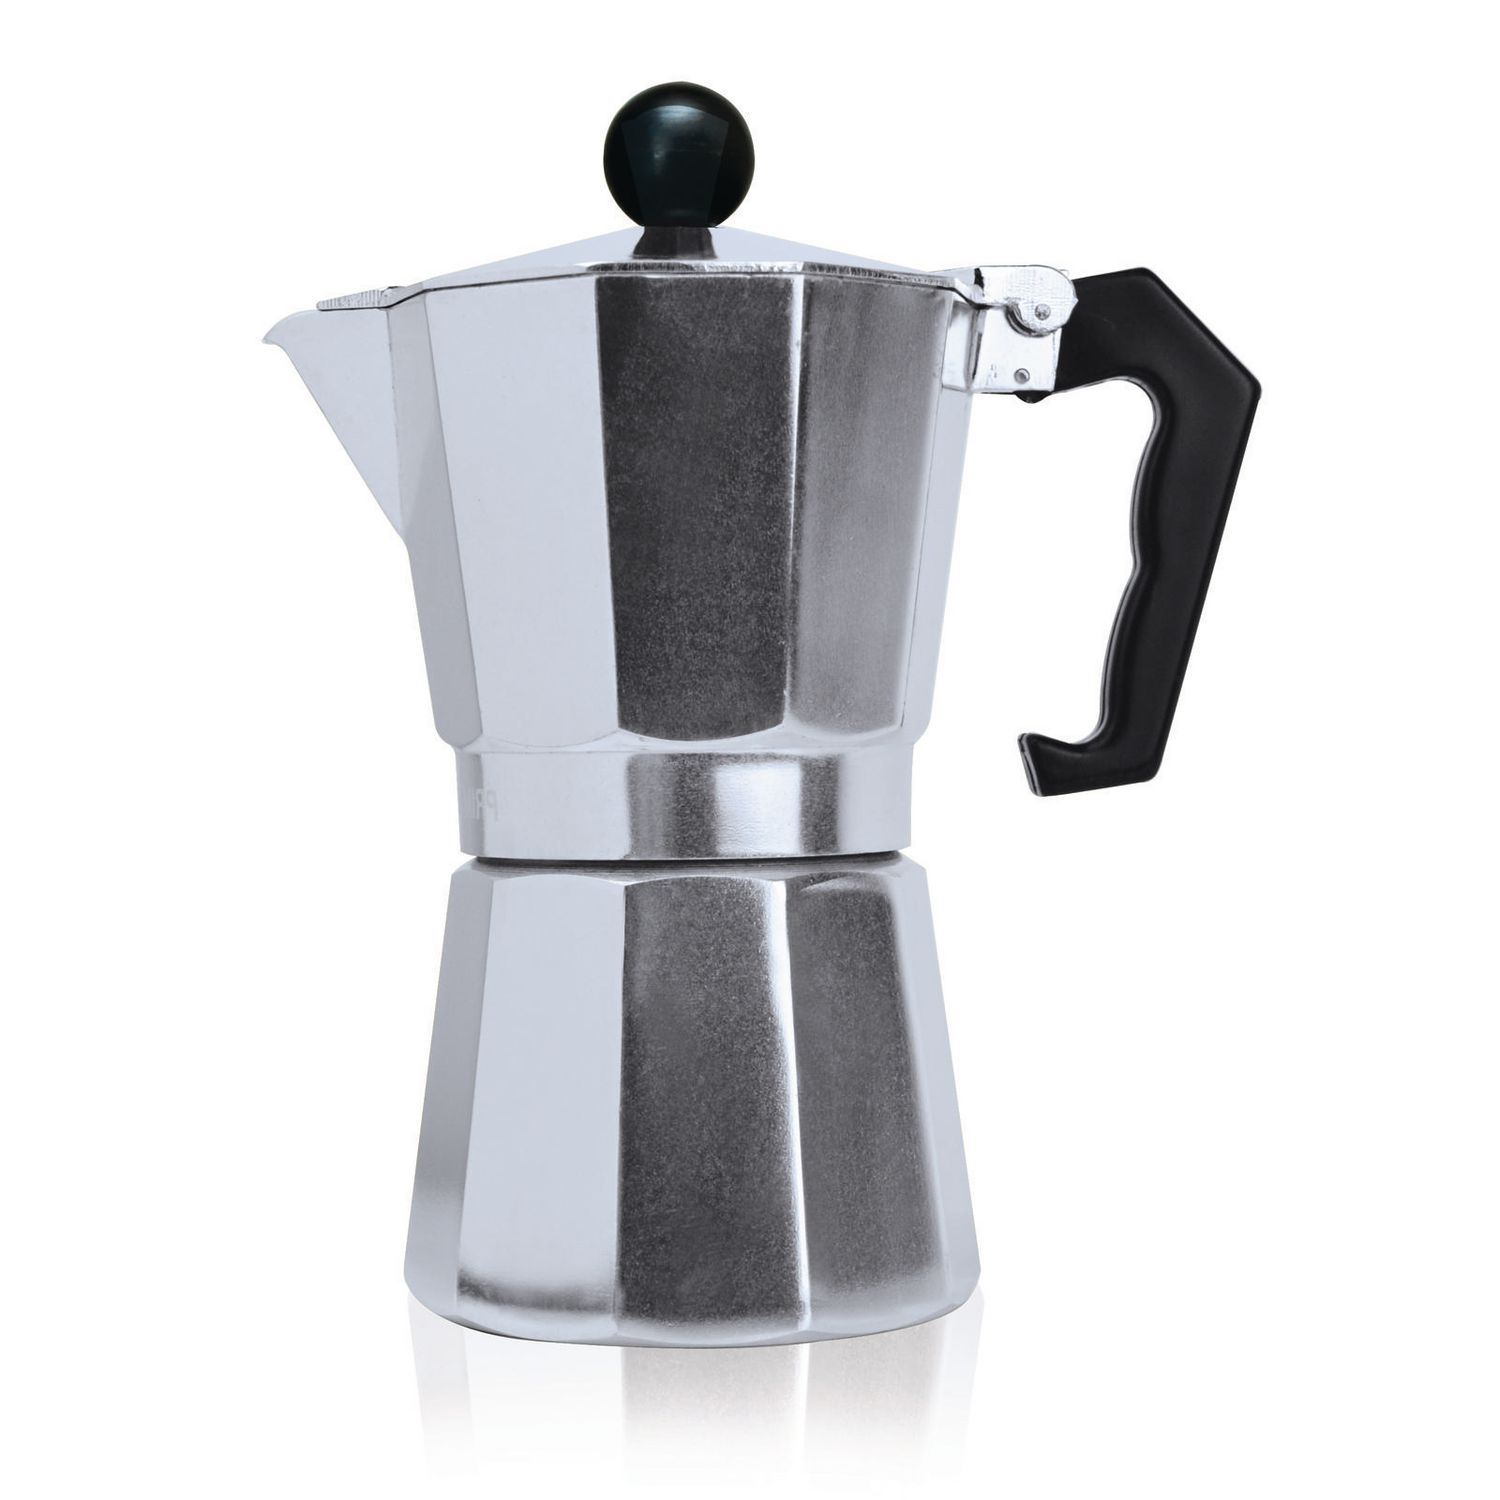 Today By Primula 6 Cup Aluminum Stovetop Espresso Coffee Maker